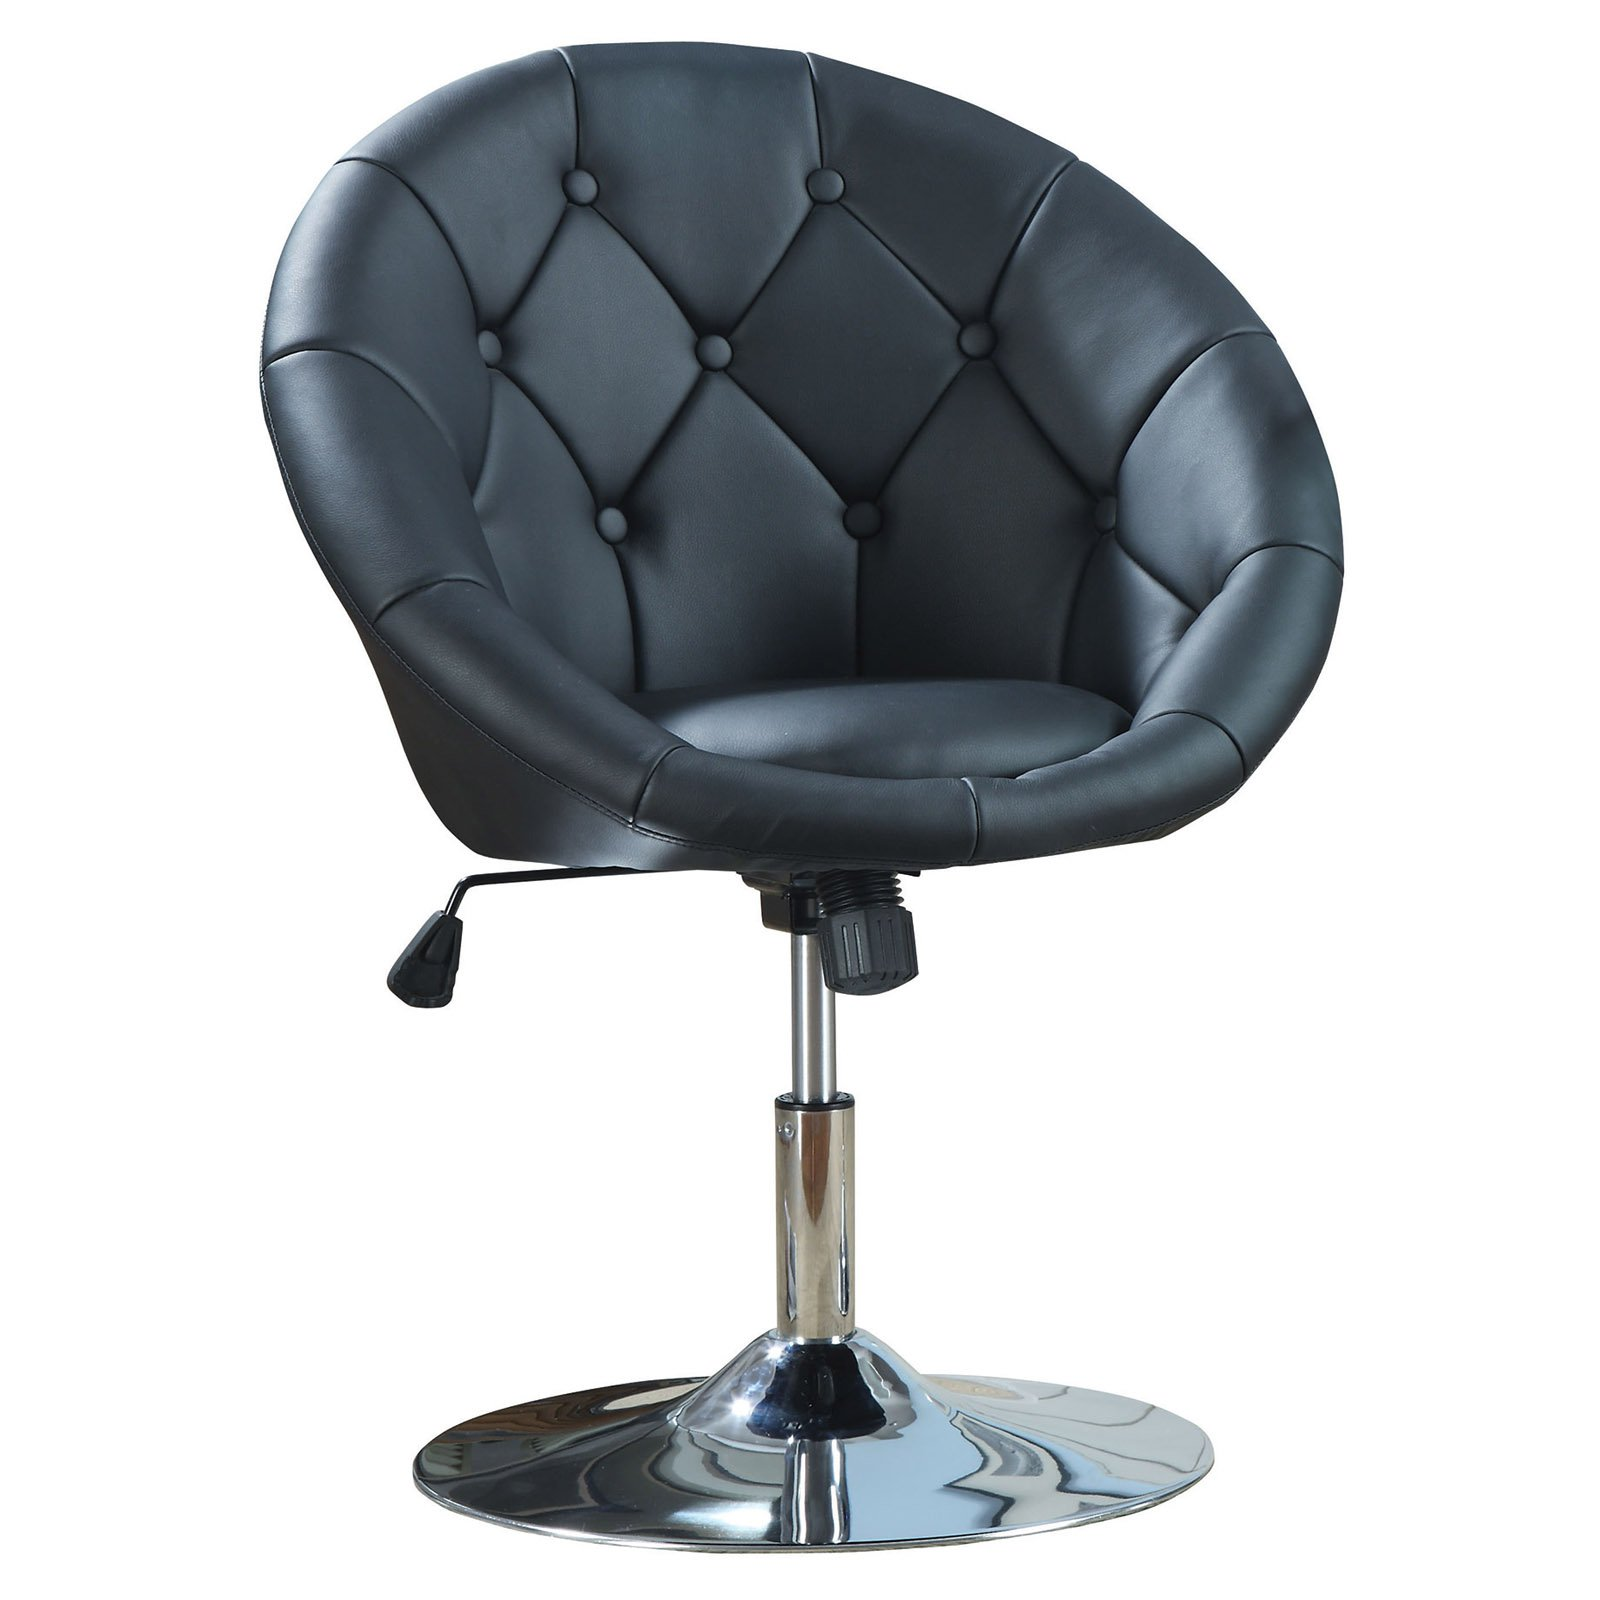 Coaster Company Accent Chair In Black Leatherette